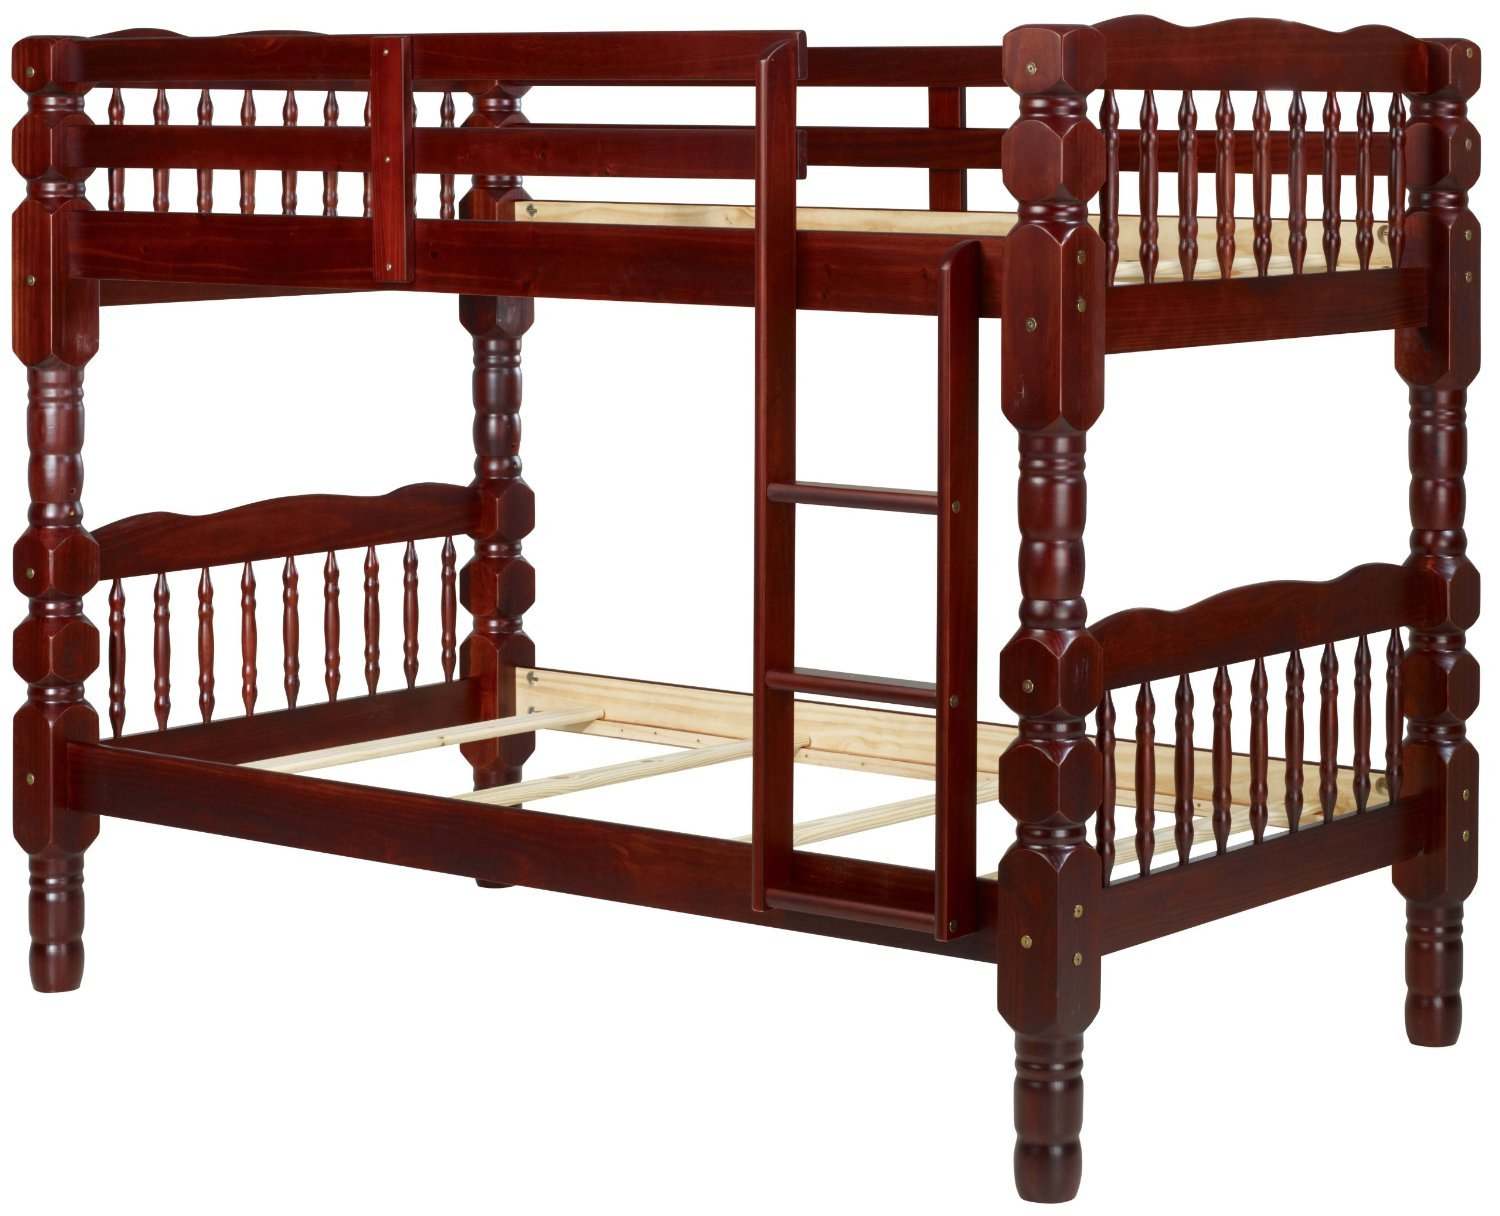 100 solid wood dakota twin twin bunk bed 61 hx44 wx82 5 l for Twin bed frame under 100